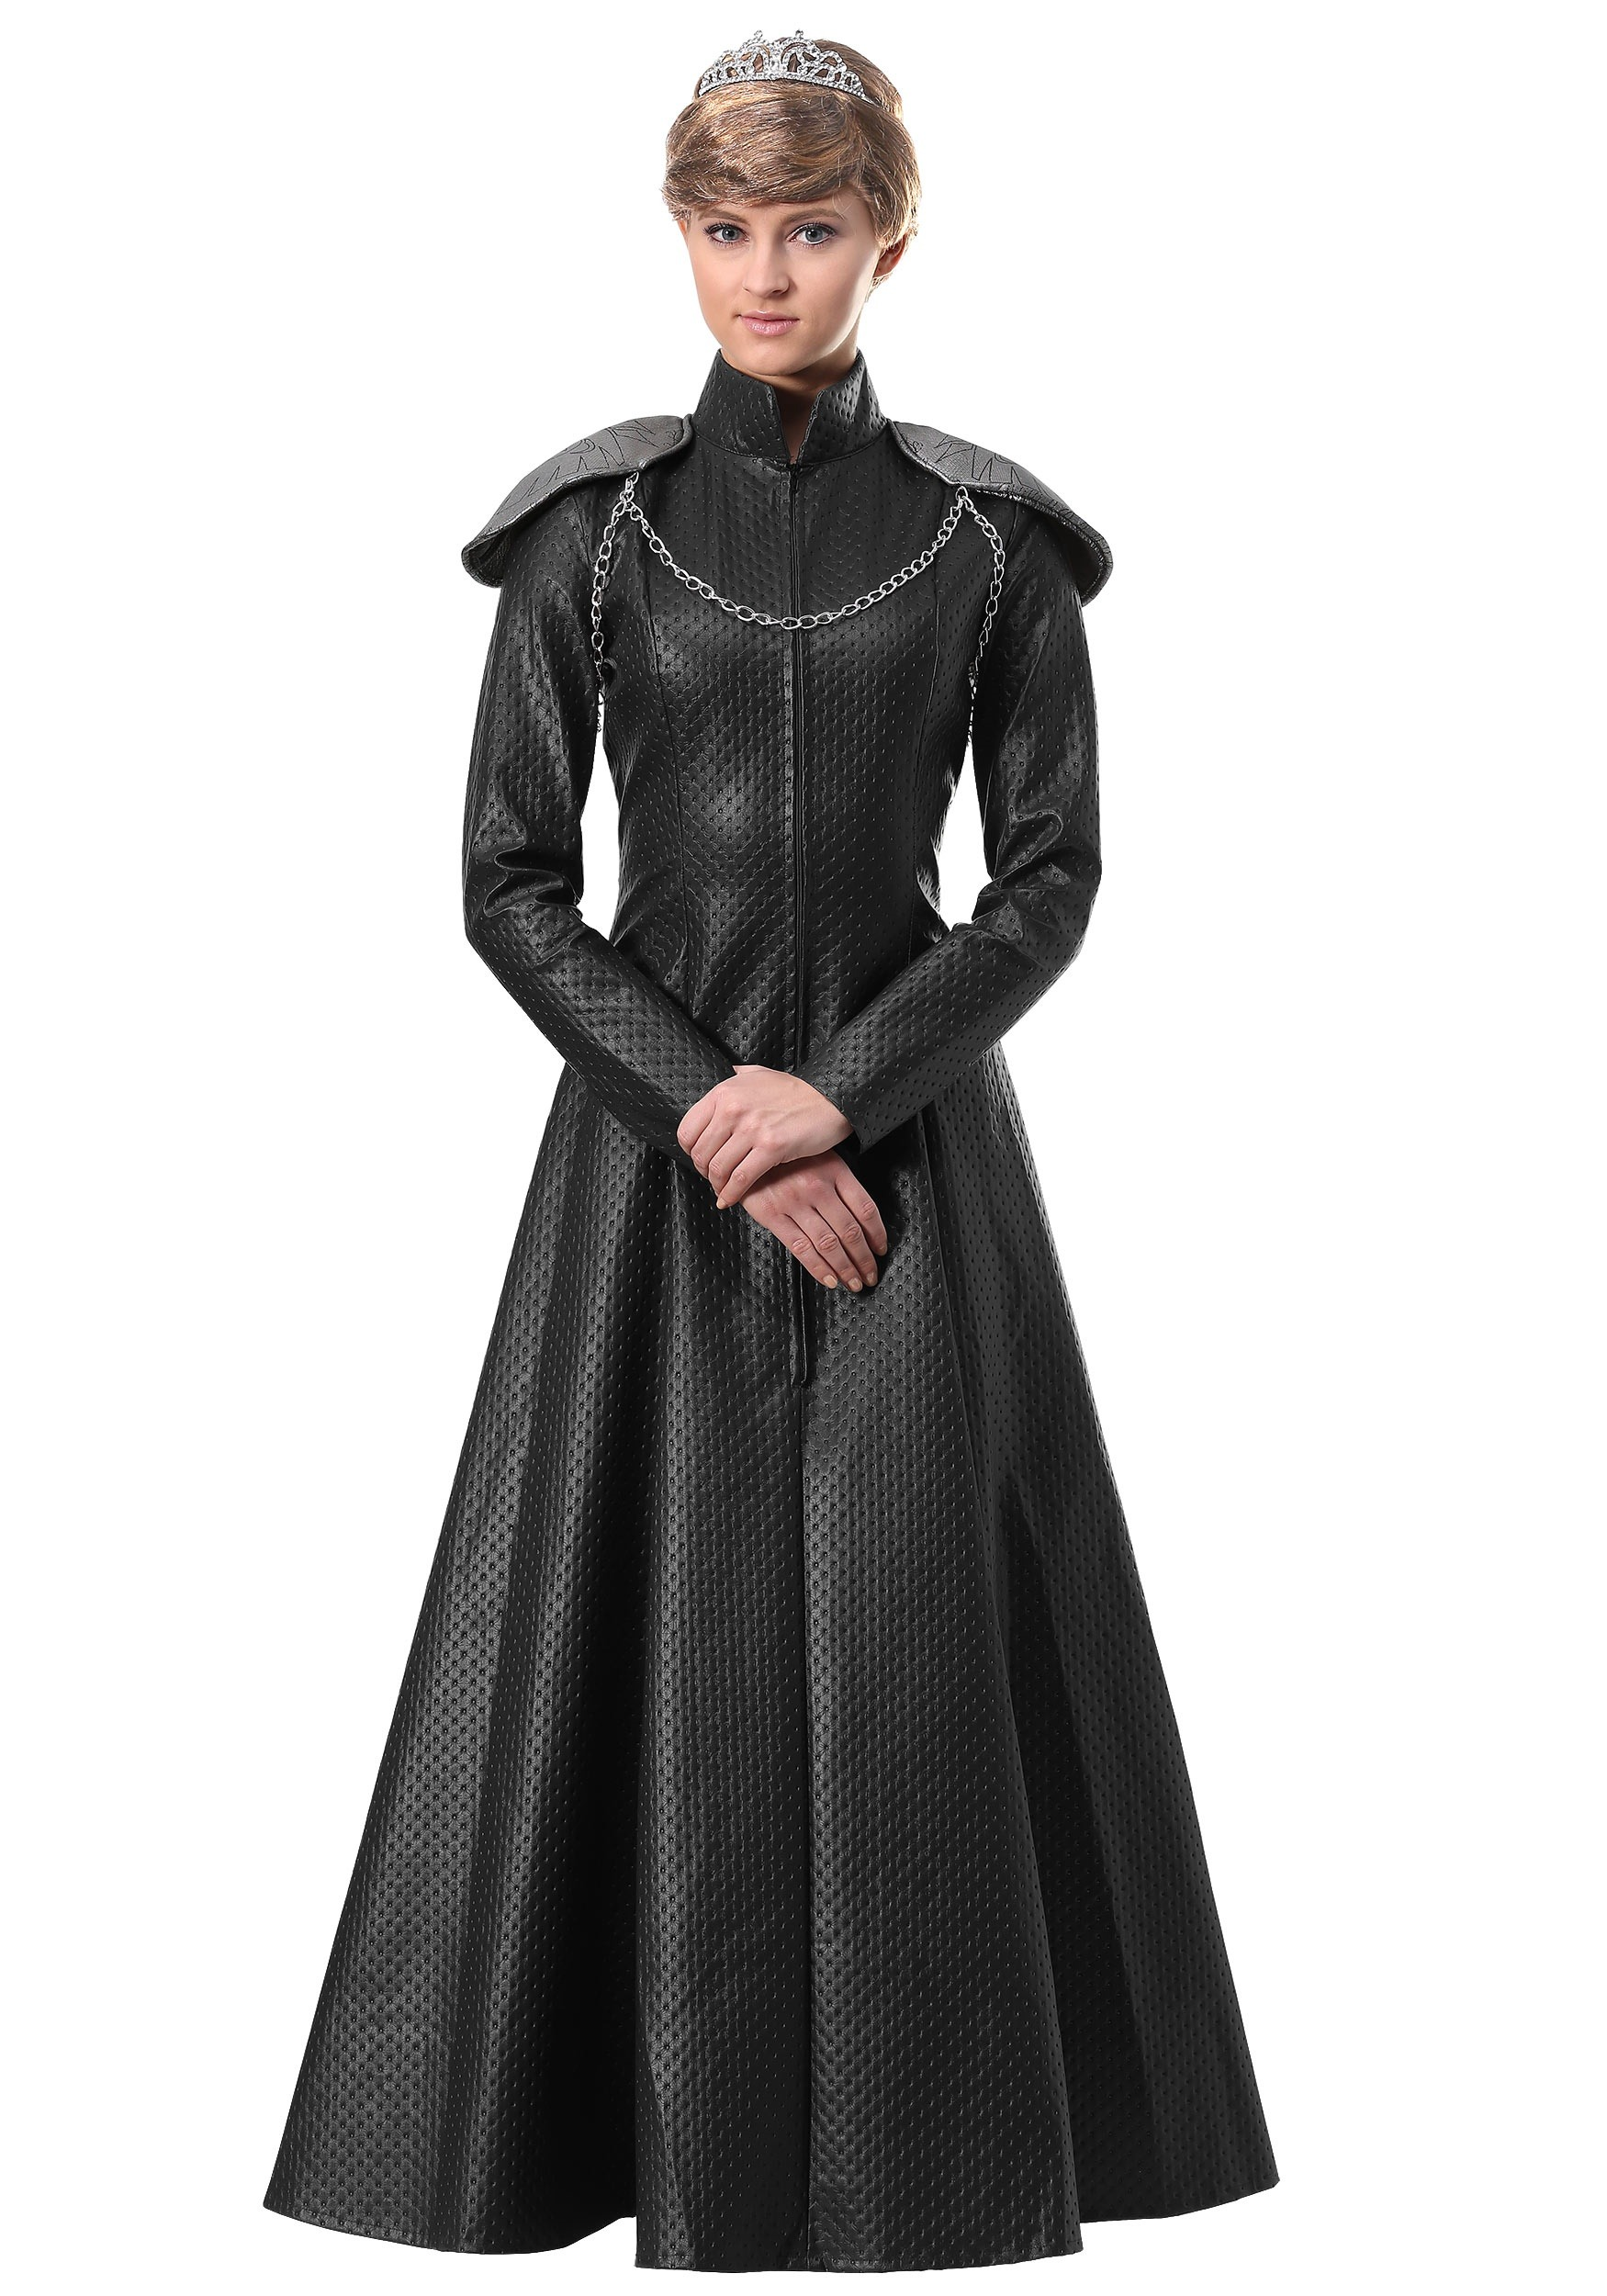 Medieval Game Womens Faux Leather Black Belt Armor of Thrones Costume Accessory